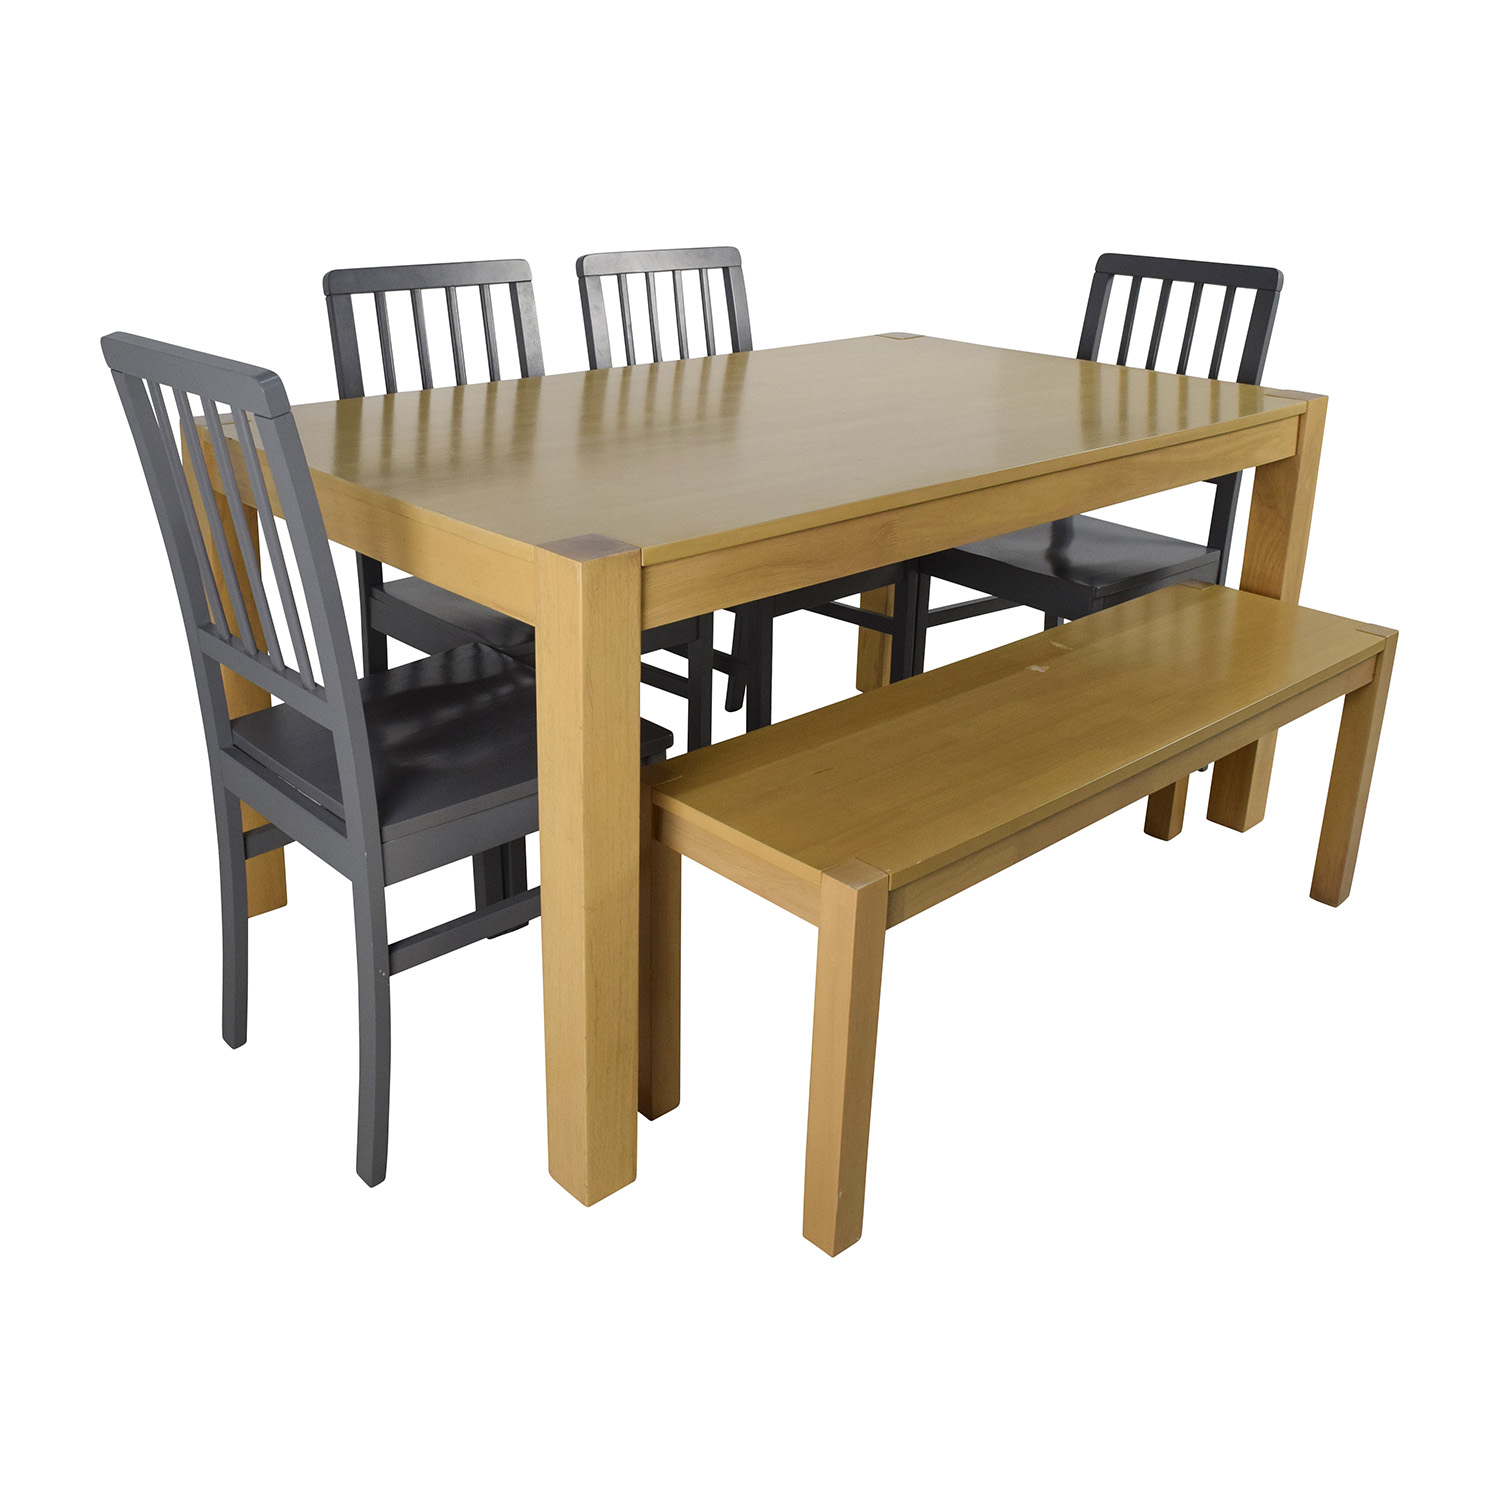 48% OFF - Wooden Dinner Set with Bench Seat / Tables